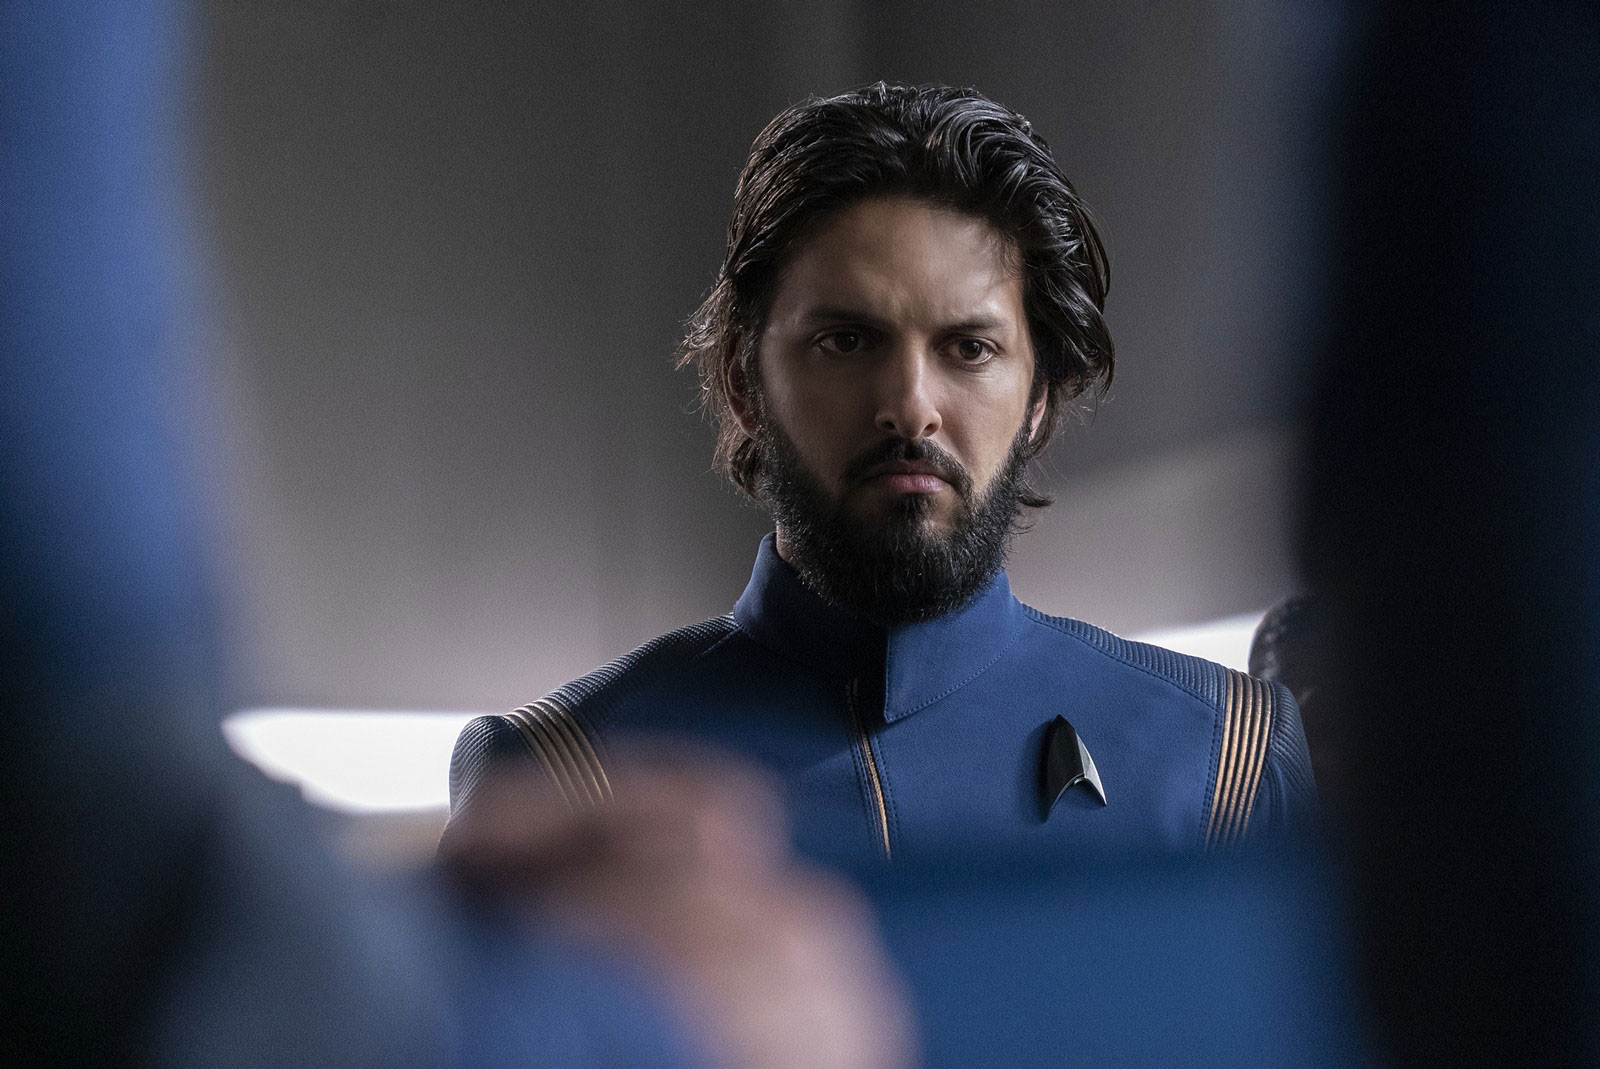 Shazad Latif as Ash Tyler